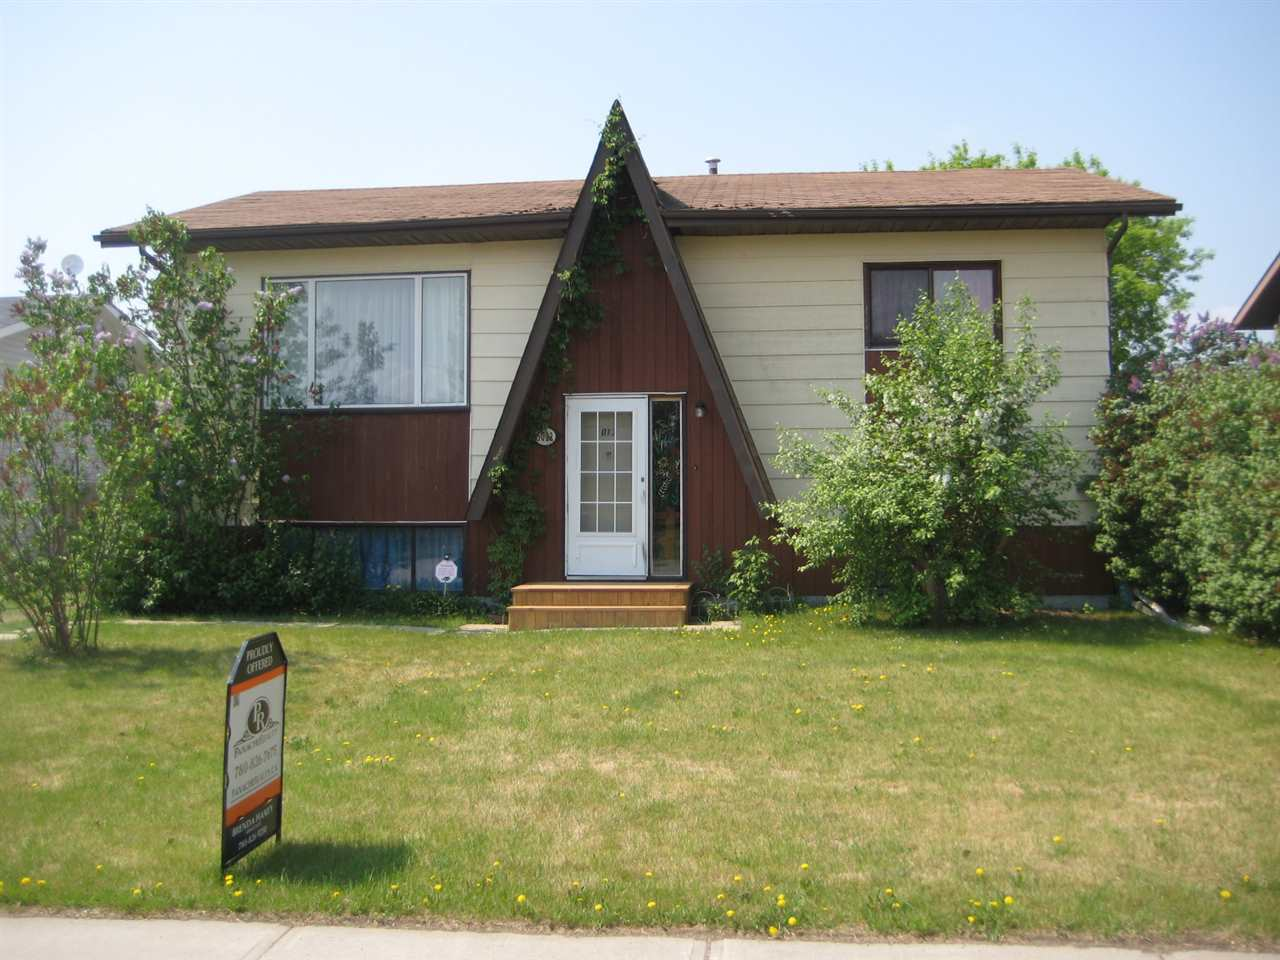 Great beginnings start here.  Excellent starter/ retirement home situated in the quaint village of Fort Kent.  3 bedrooms, 2 bathrooms. Lower level is partially developed with a familyroom, bathroom, and bedroom. Original owner, Very well maintained and clean.